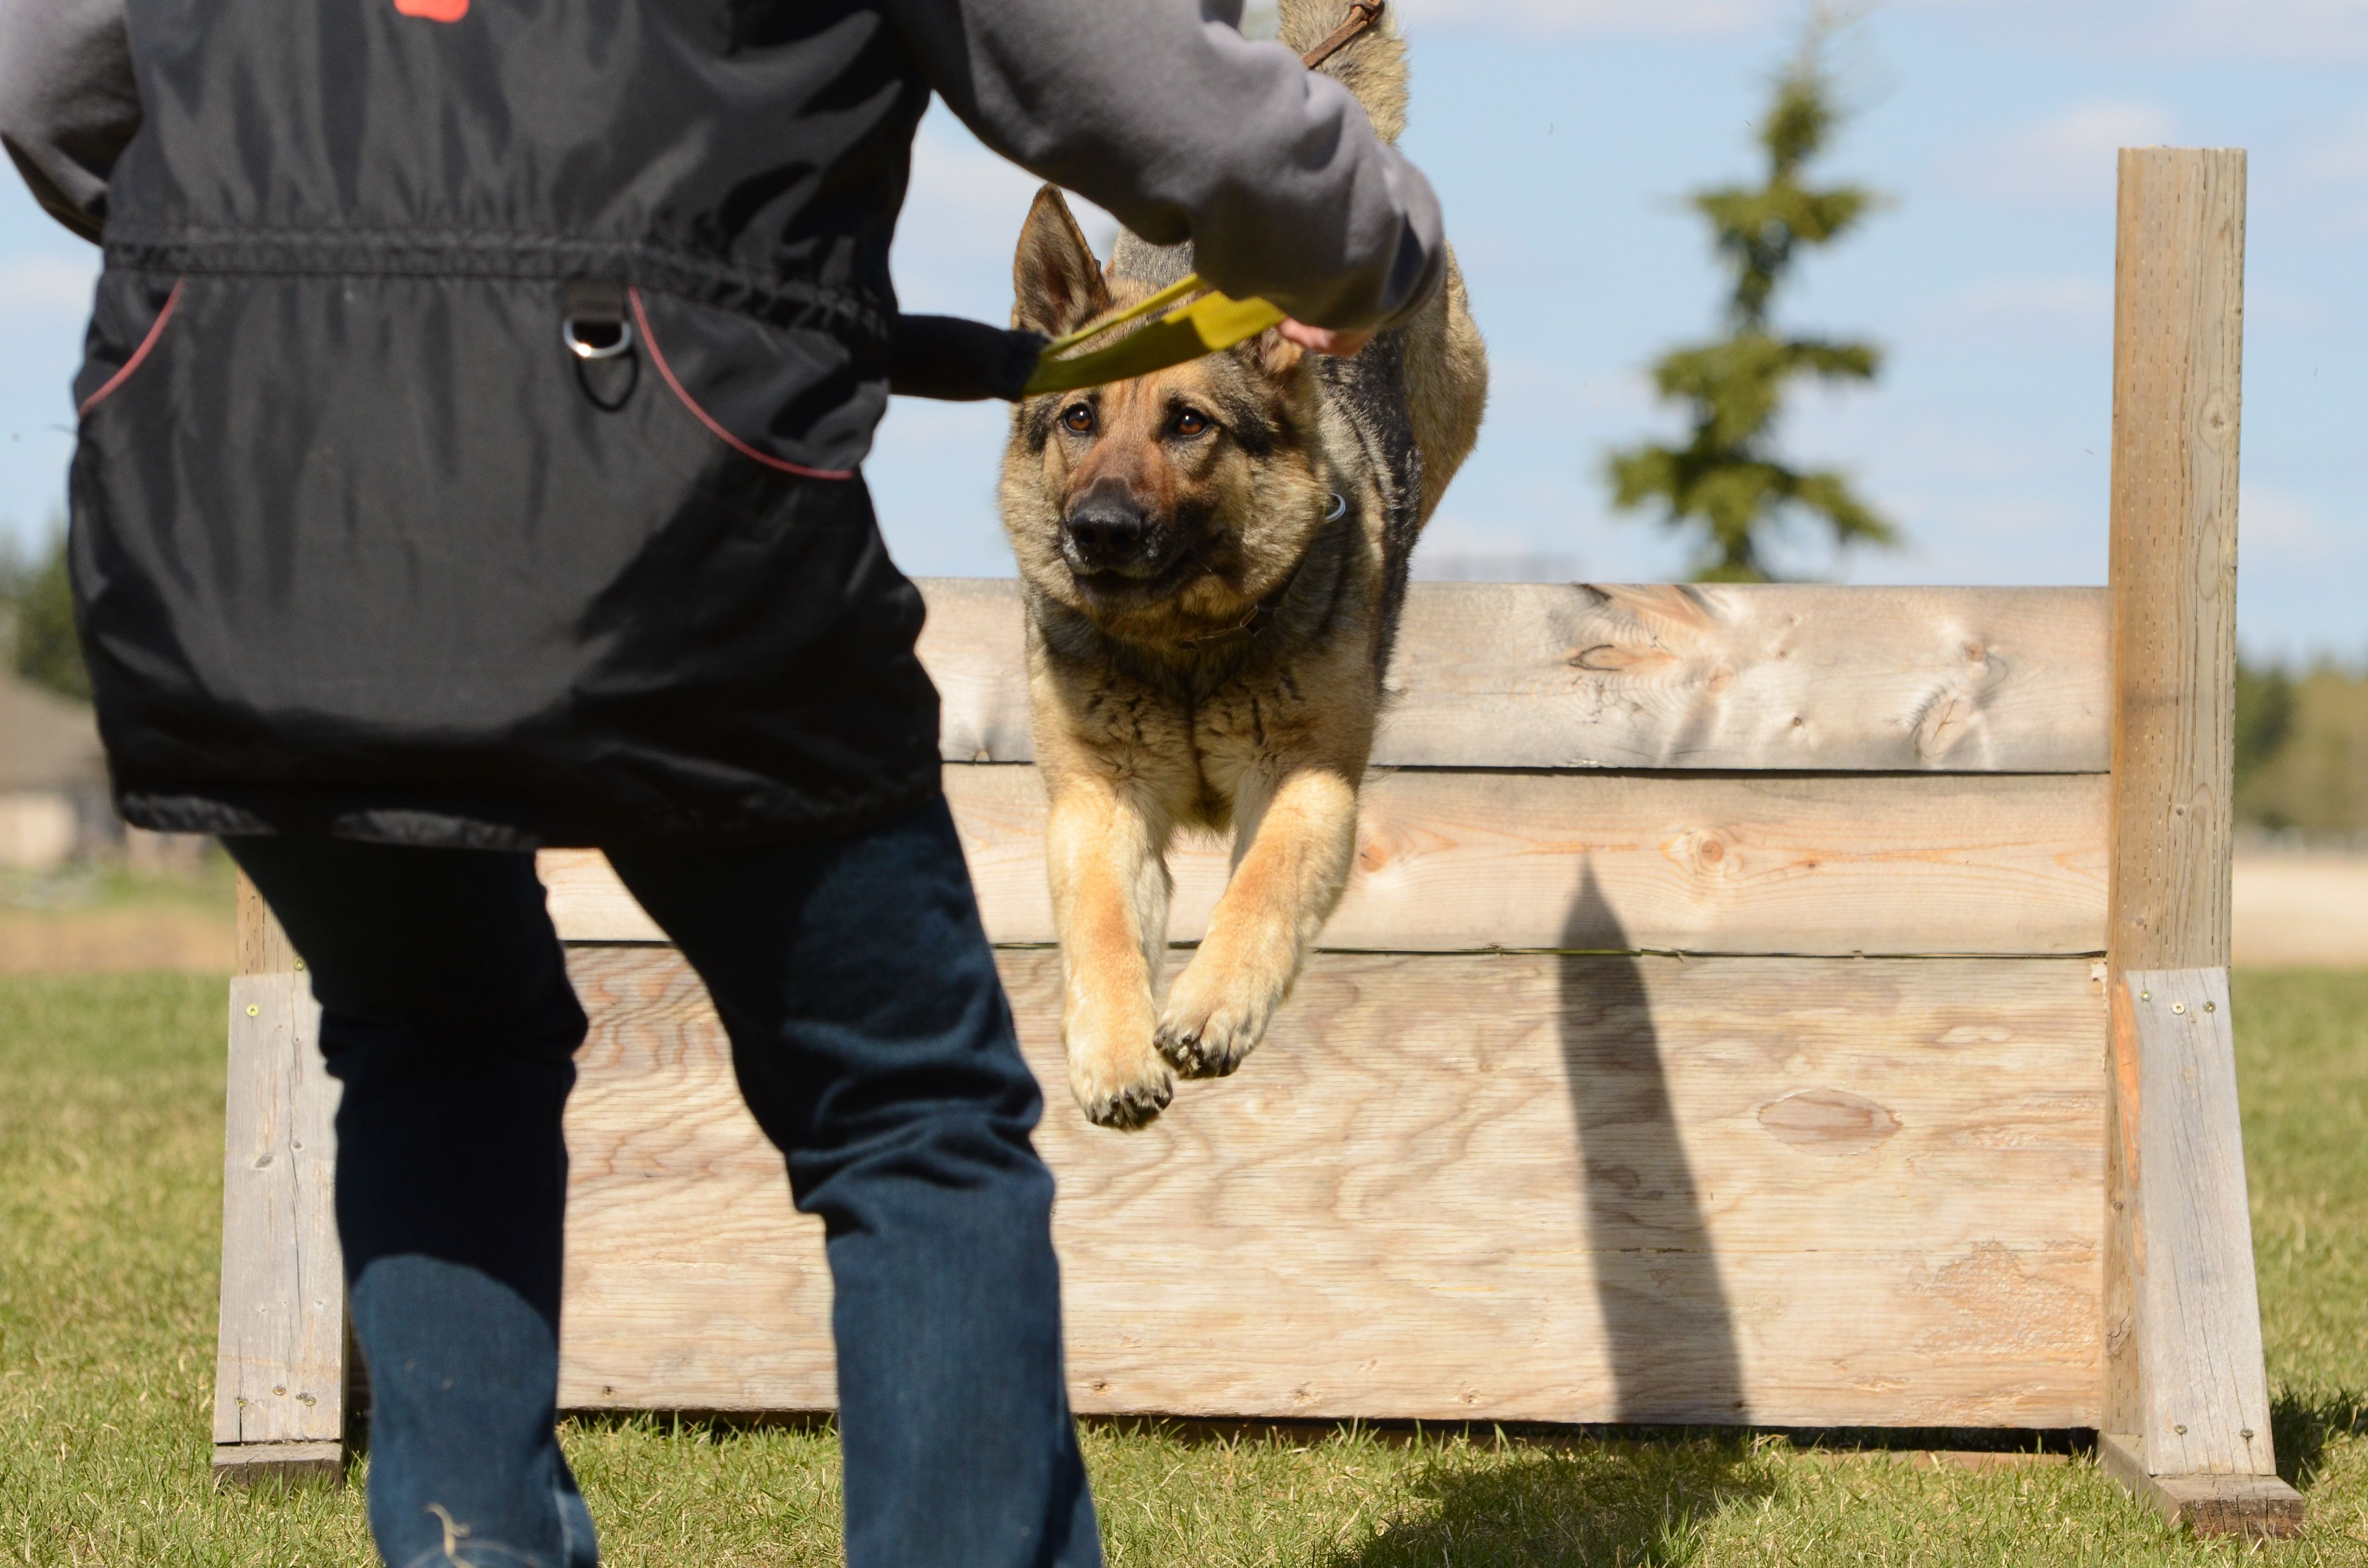 Logan and Ceyla, German Shepherd Dogs. They compete in